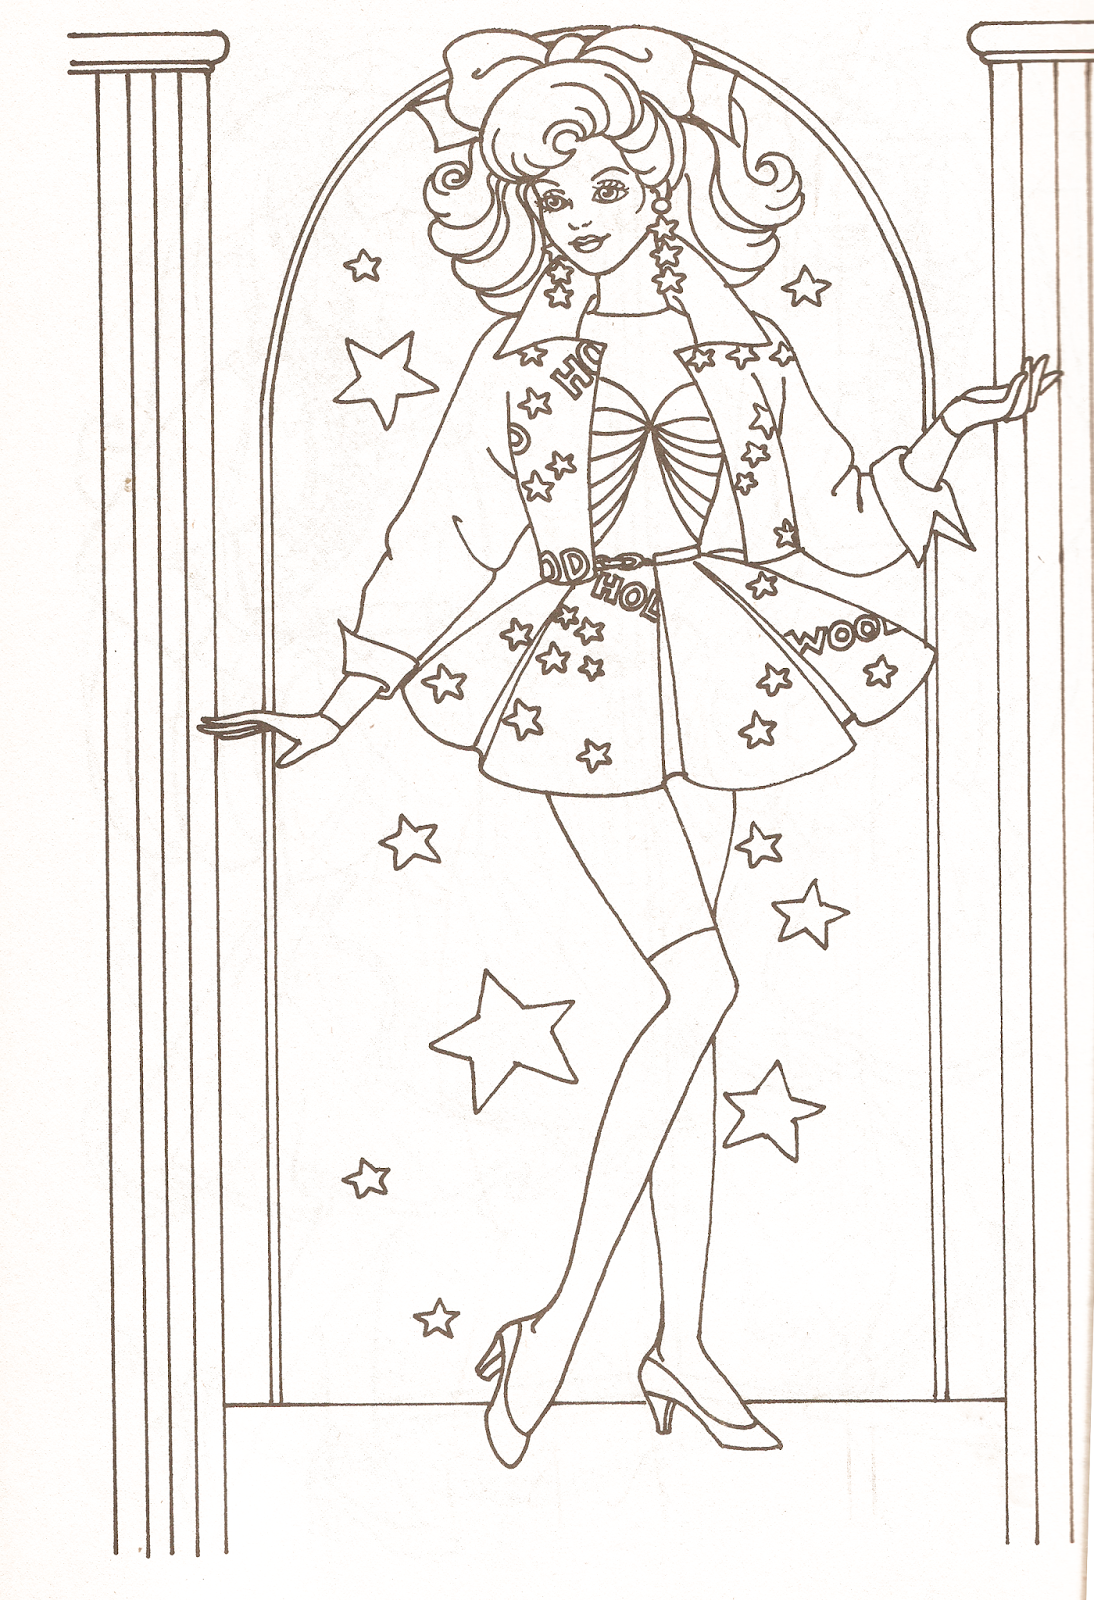 Miss Missy Paper Dolls Barbie Coloring Pages Part 2 Barbie Coloring Pages Barbie Coloring Coloring Pages